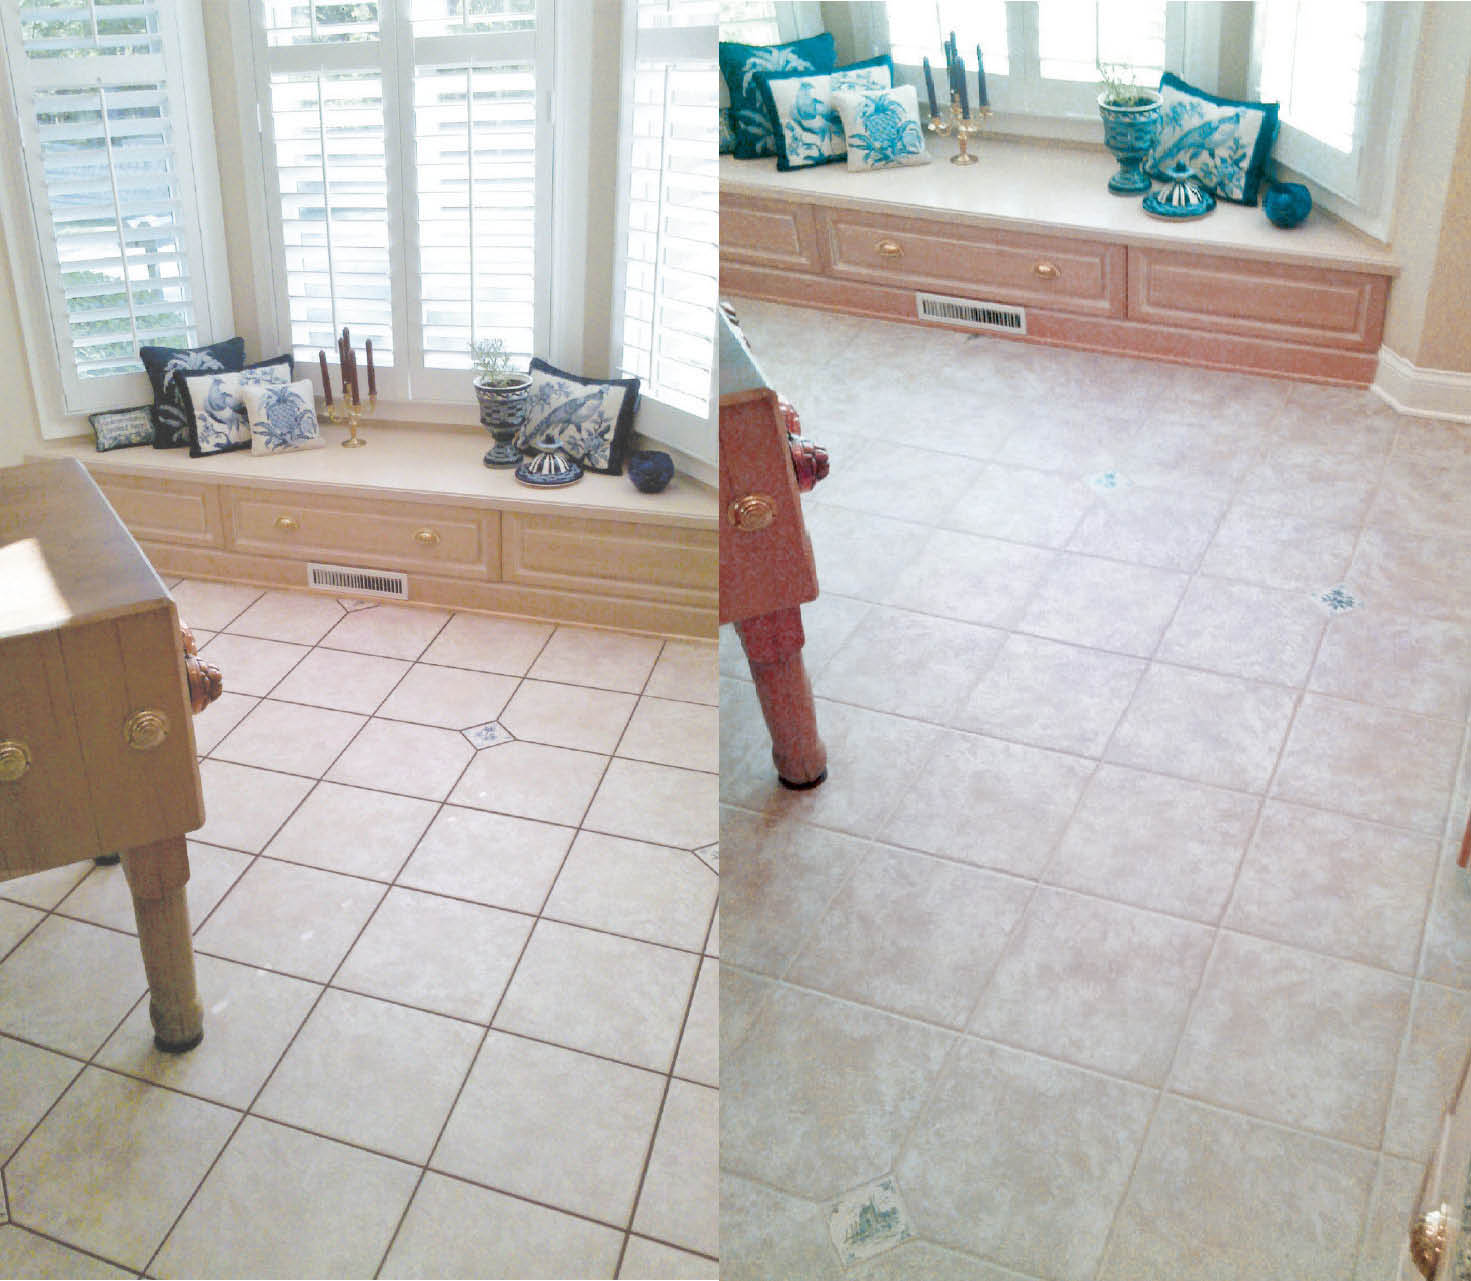 companies, carpet and grout cleaning, cleaning grout off tile, best way to whiten grout, floor tile